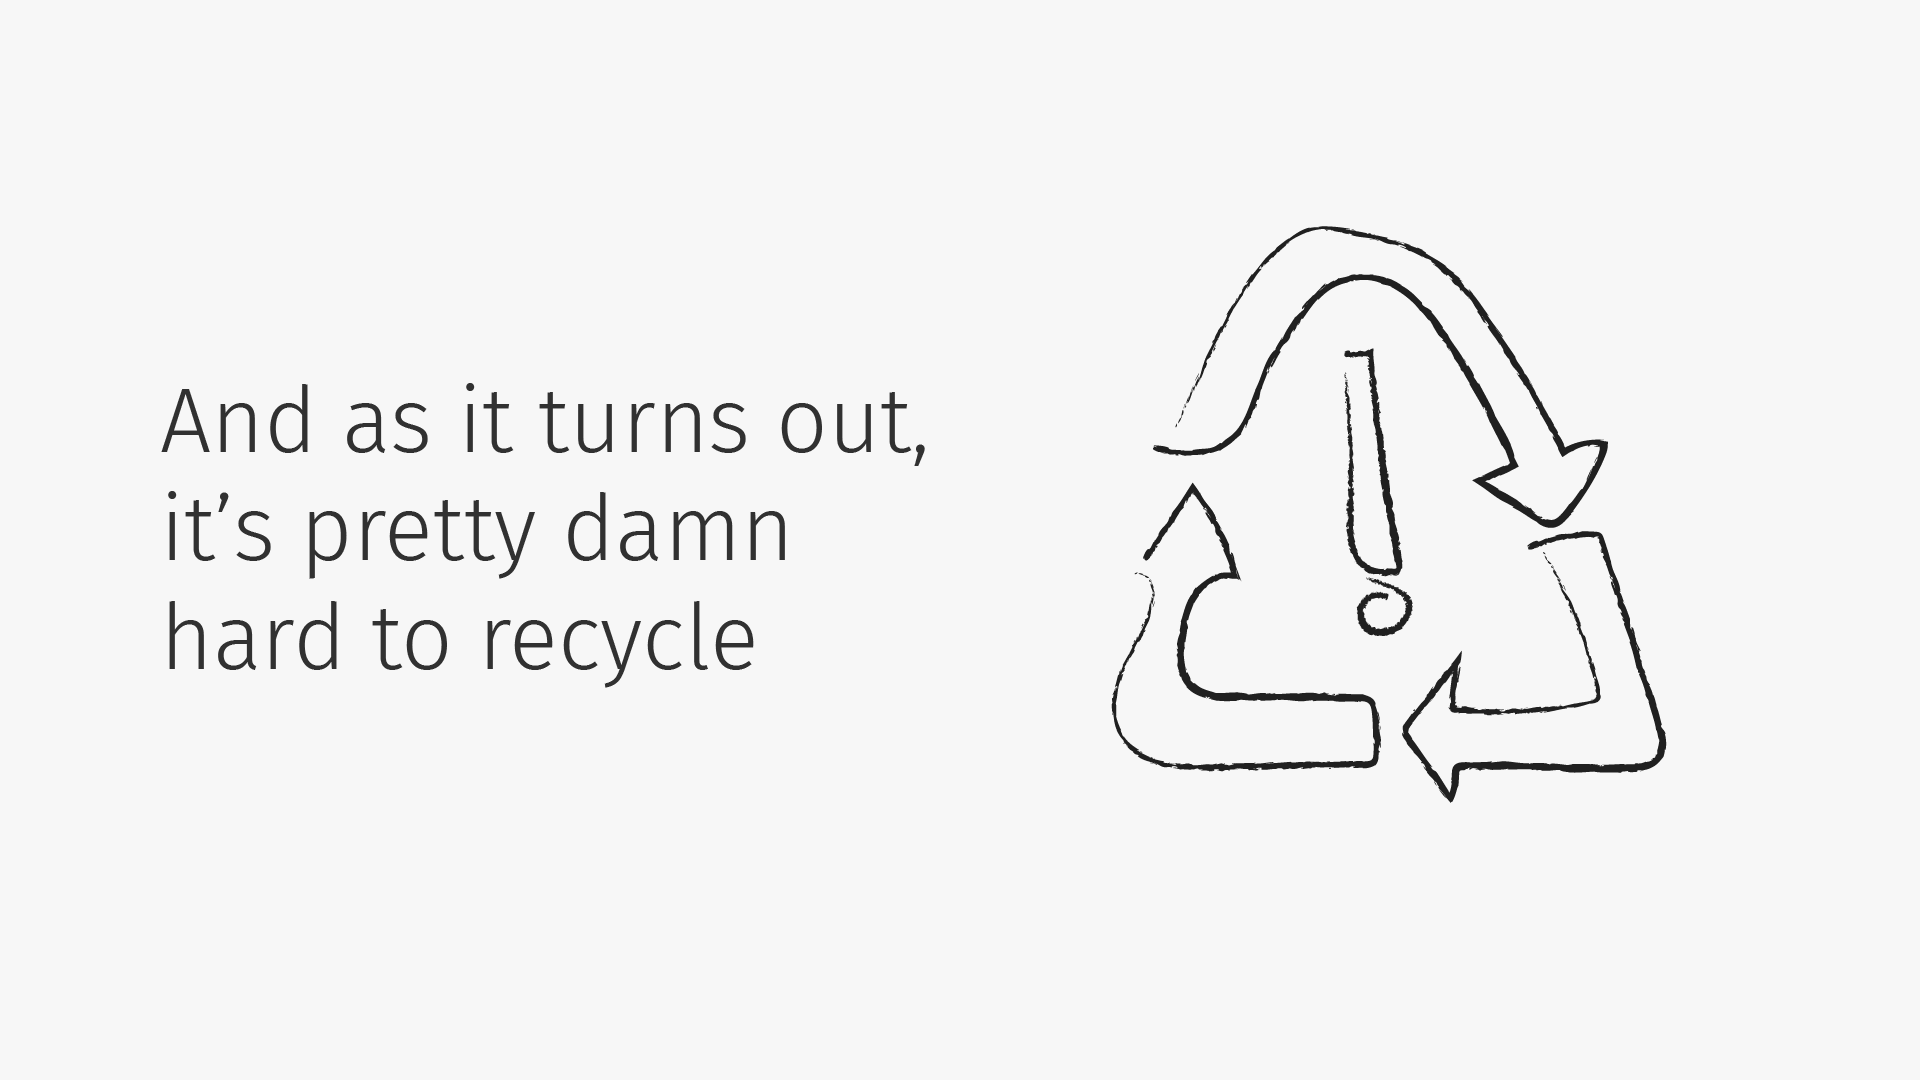 Damn hard 2 recycle